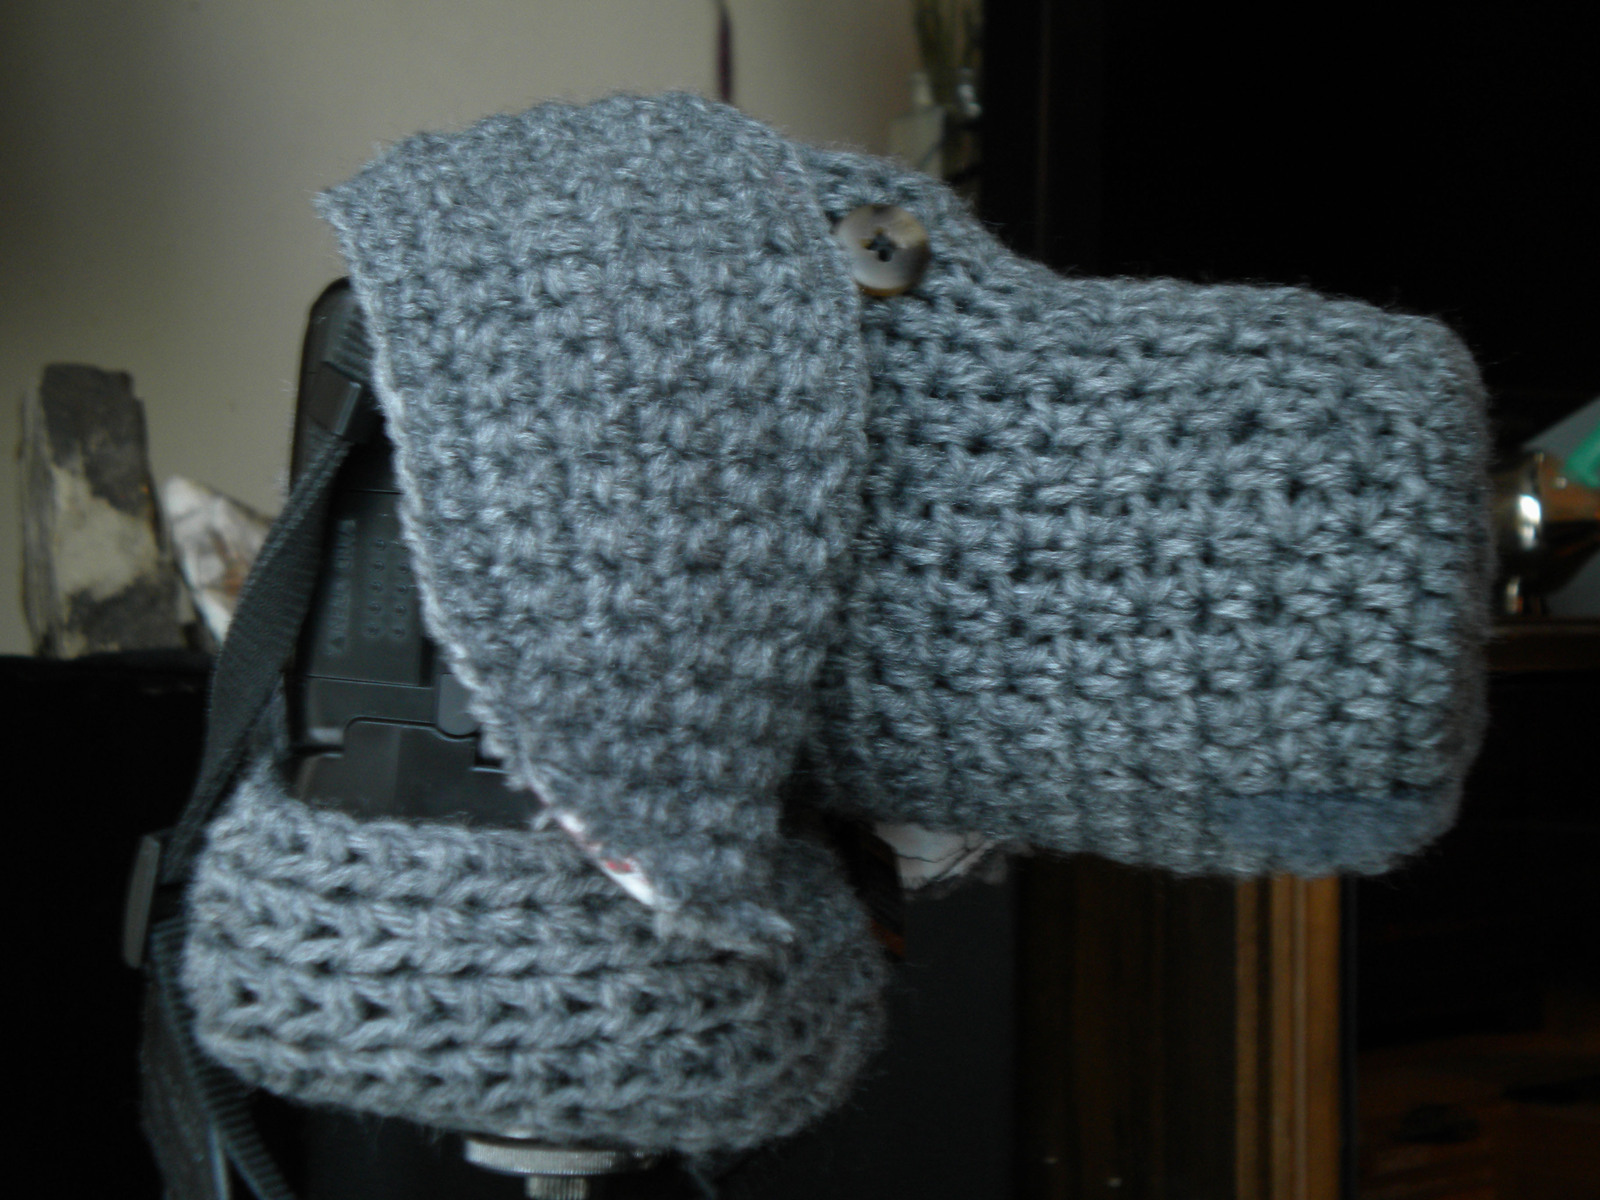 Weimaraner Dslr Camera Cosy 183 A Knit Or Crochet Pouch